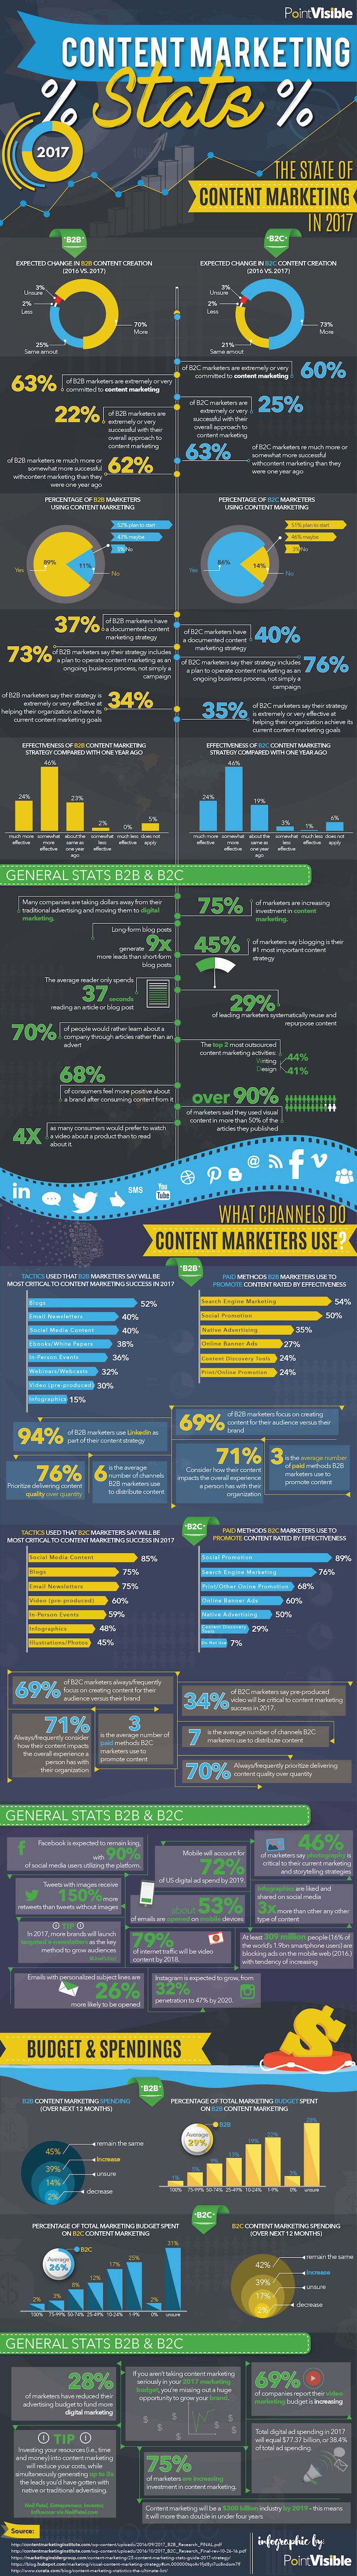 #ContentMarketing in 2017: The Important Stats You Need to Know #Infographic #Marketing